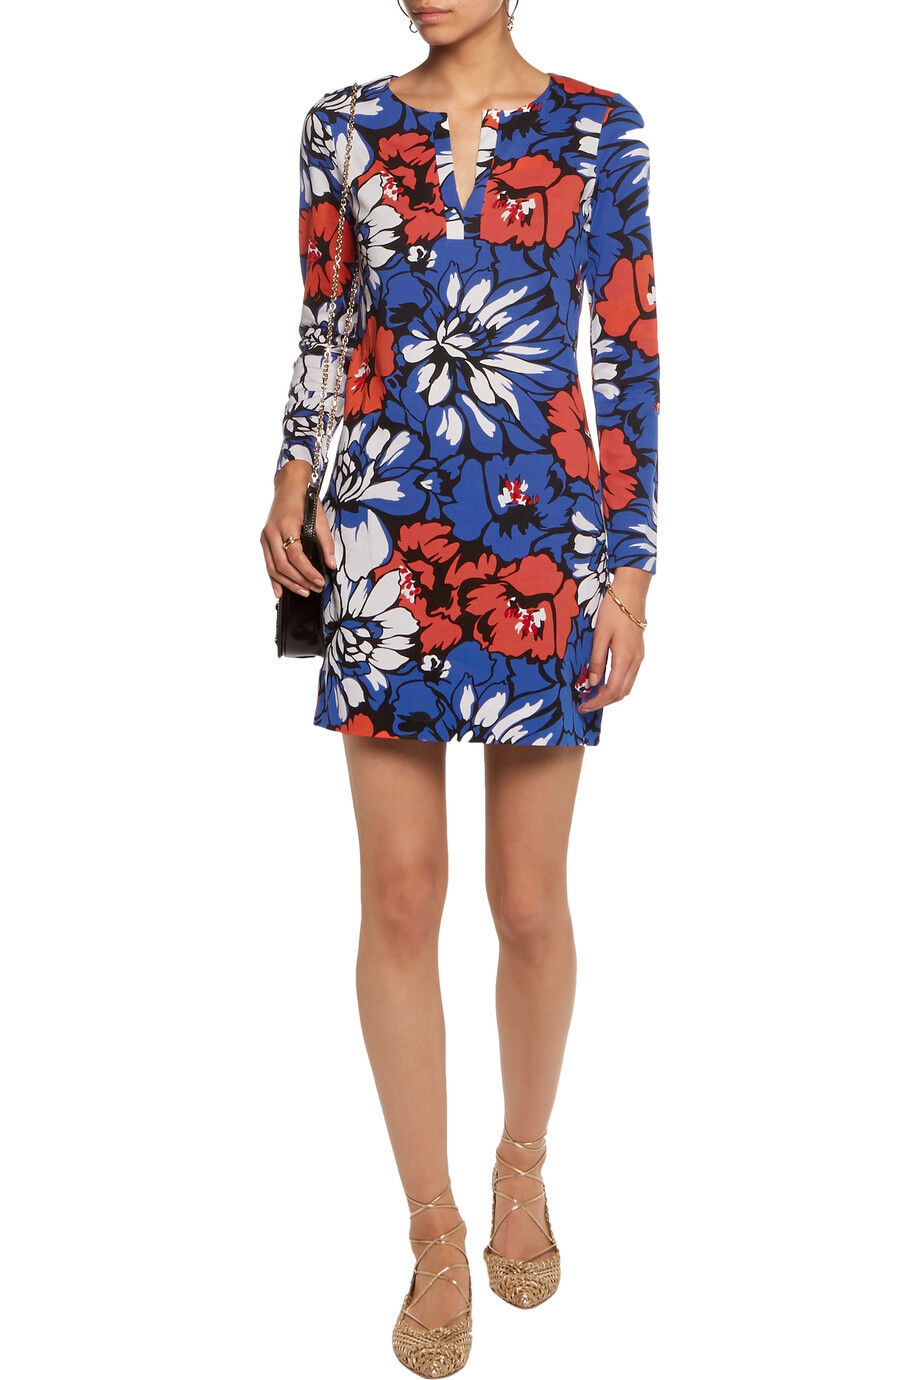 NWT- DVF Reina floral cotton silk-blend jersey dress (Size 4)